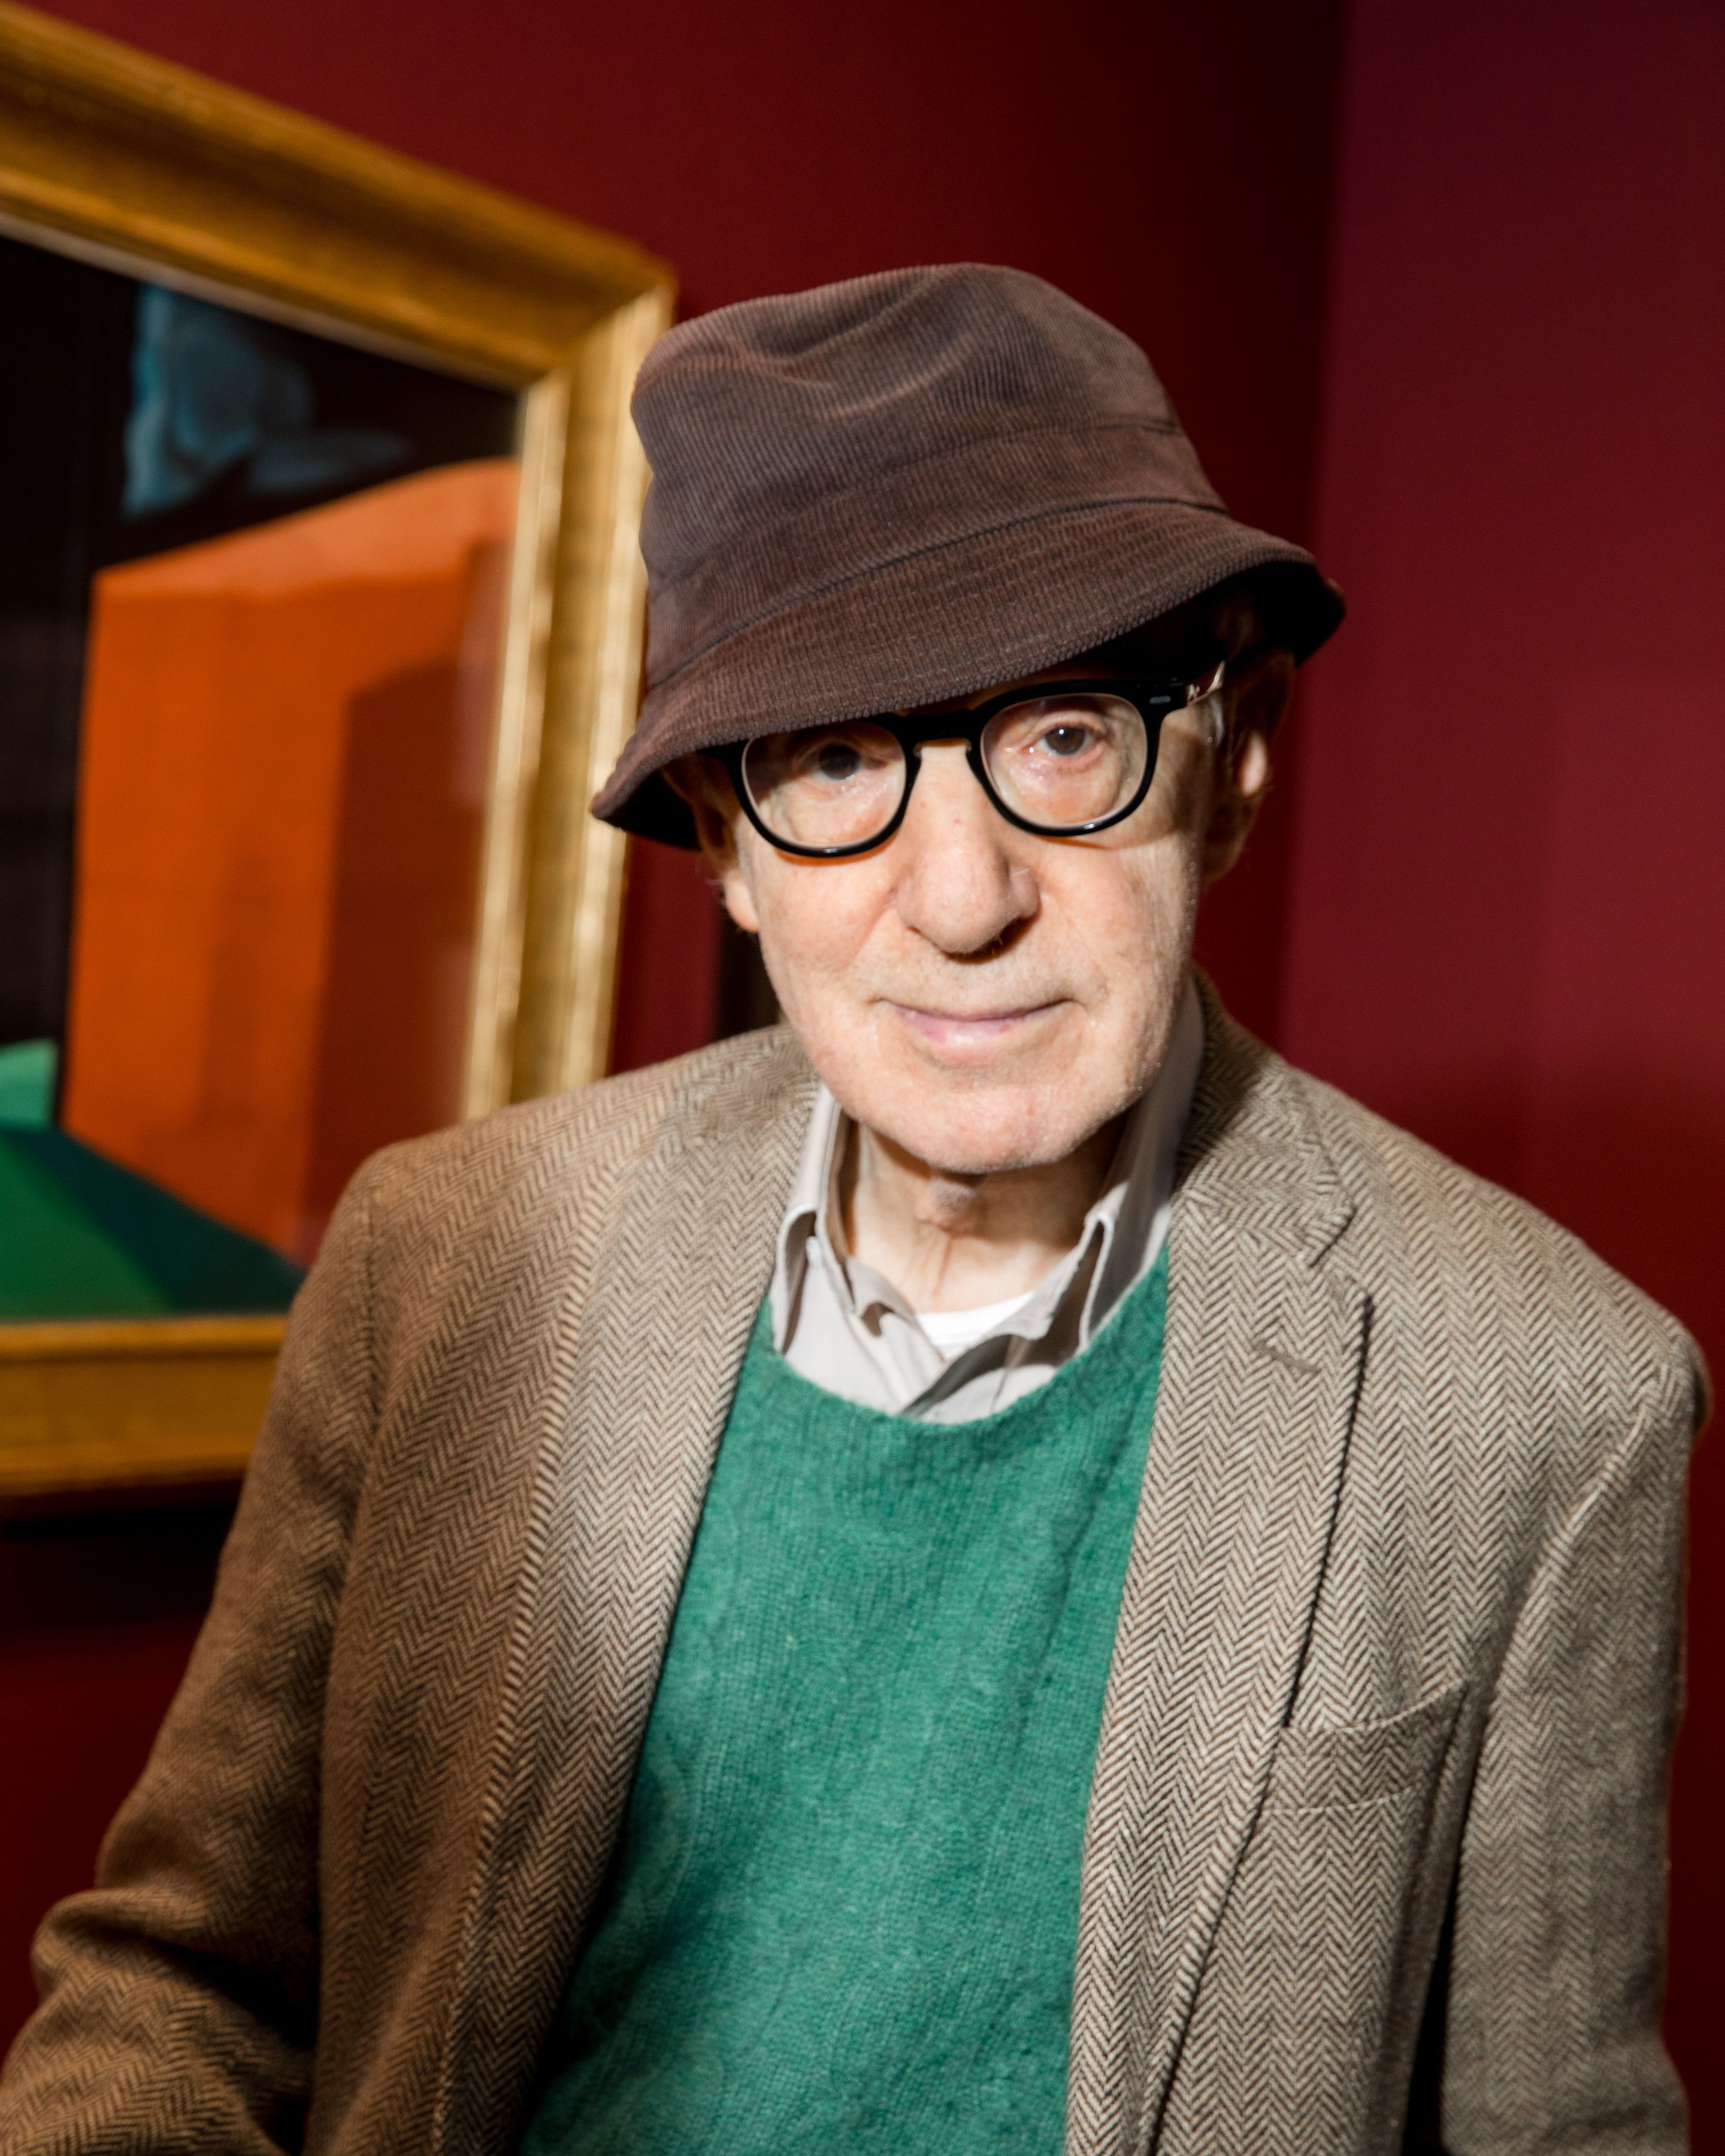 Woody Allen attends the Art Show Gala preview in New York City on Feb. 27, 2018.